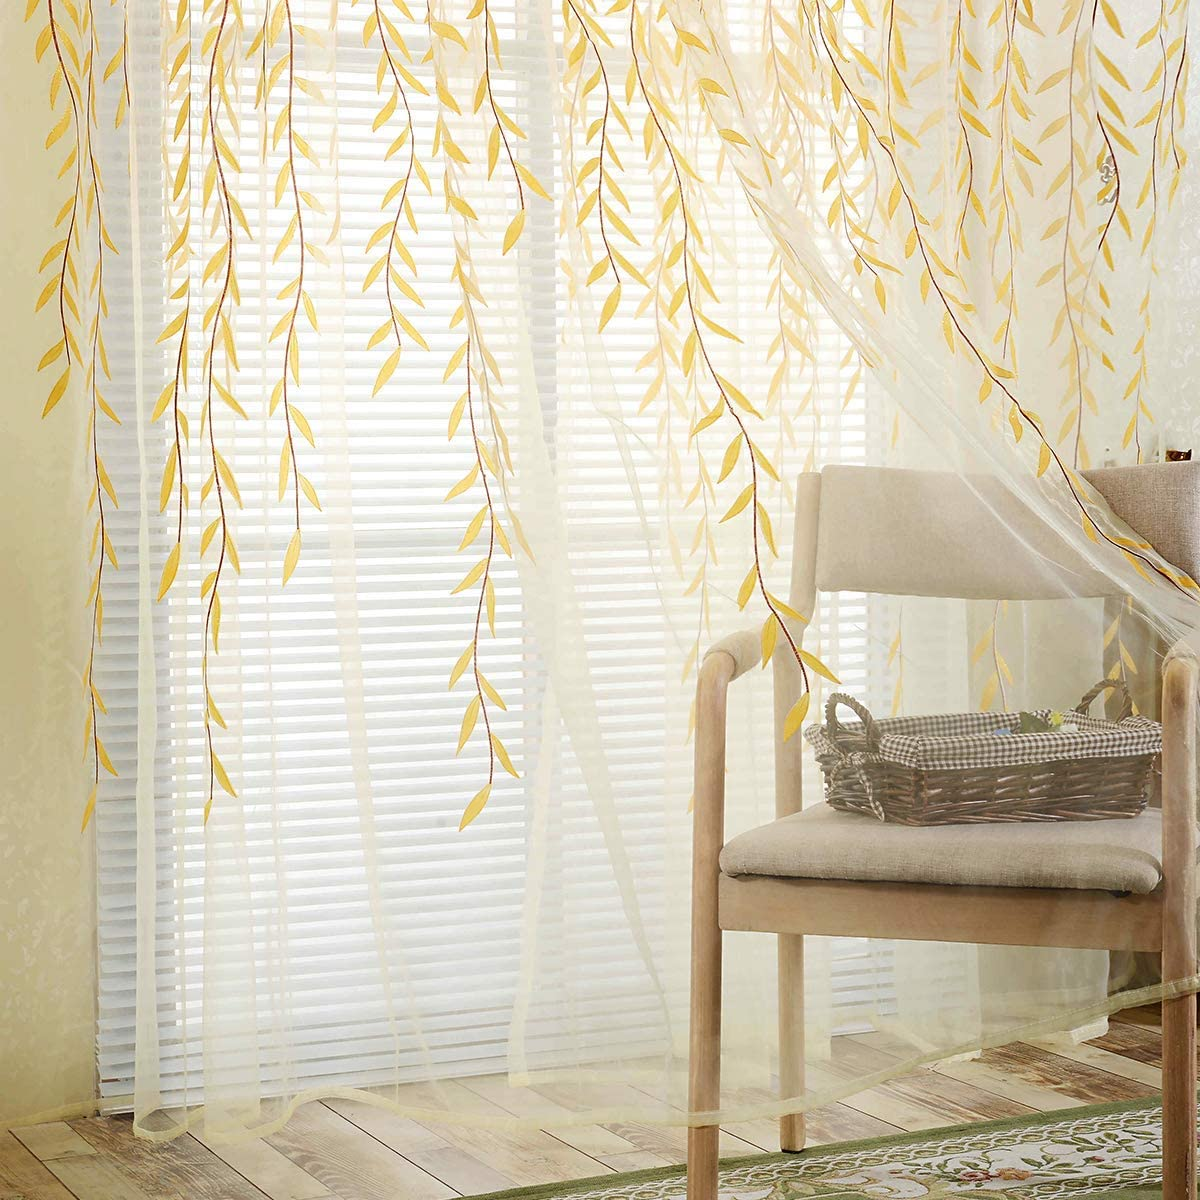 BROSHAN Voile Room Door Curtain 1 Panel , Willow Leaf Print Sheer Curtains and Drapes Yellow for Living Room Bedroom Window Treatment Transparent , 1 Panel